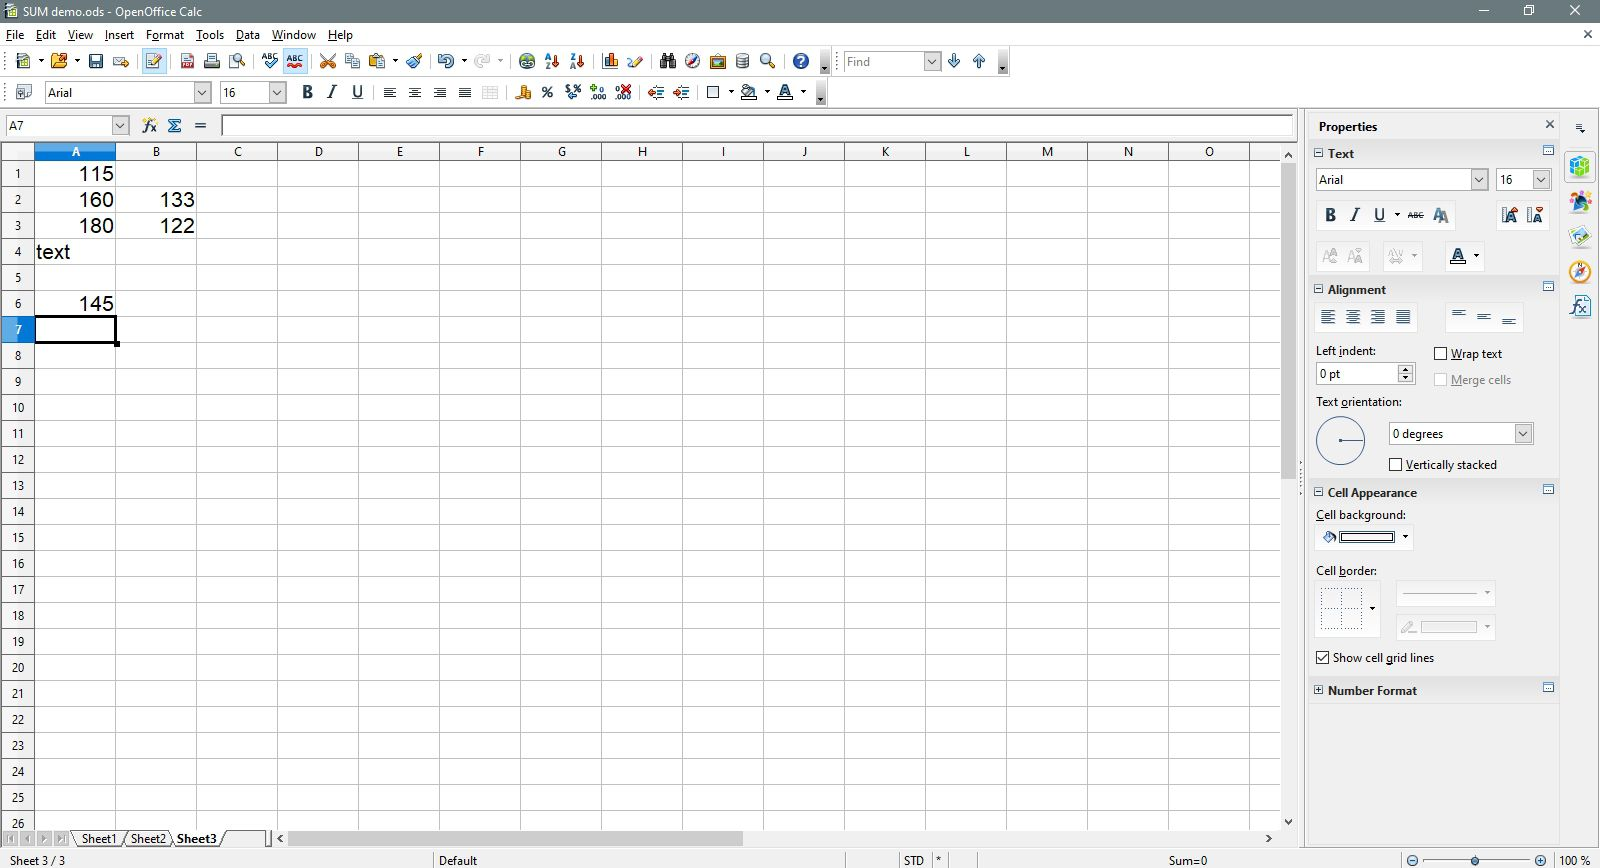 A7 is selected in OpenOffice Calc.